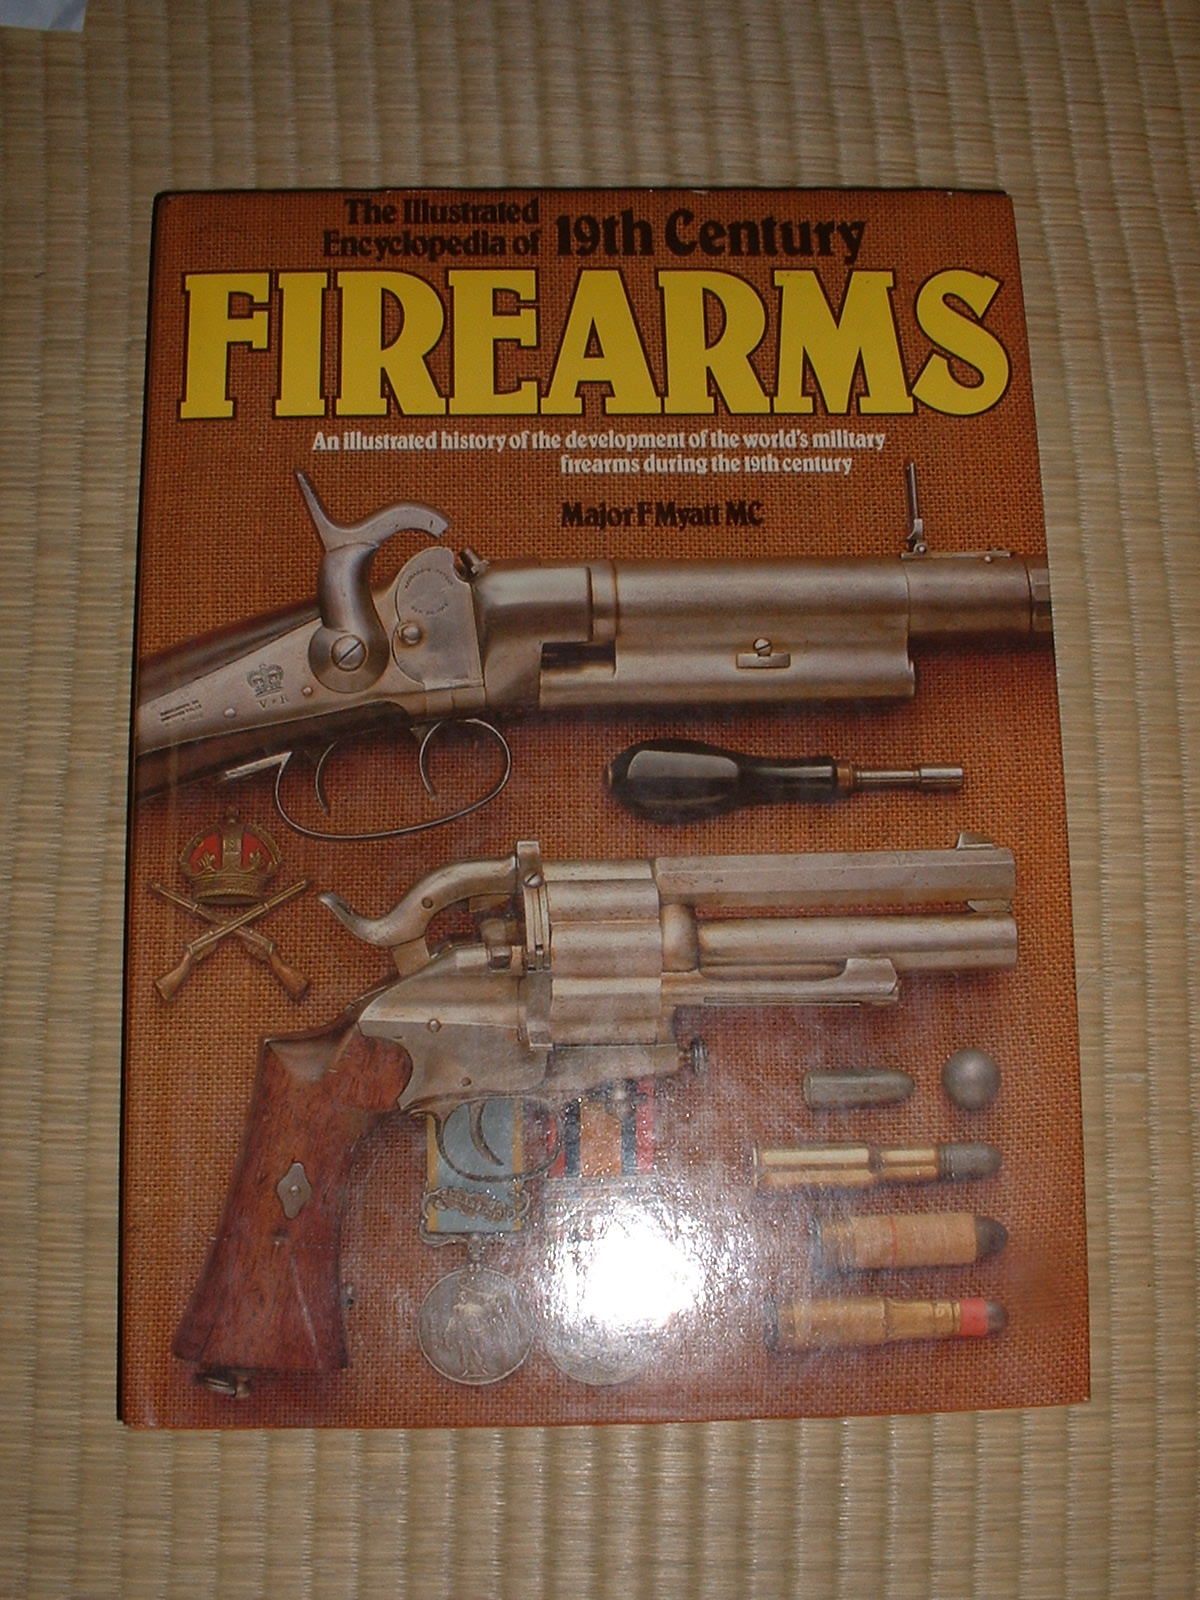 Frederlck Myatt著「The Illustraled Encyclopeia of 19th FIRE ARMS」.JPG